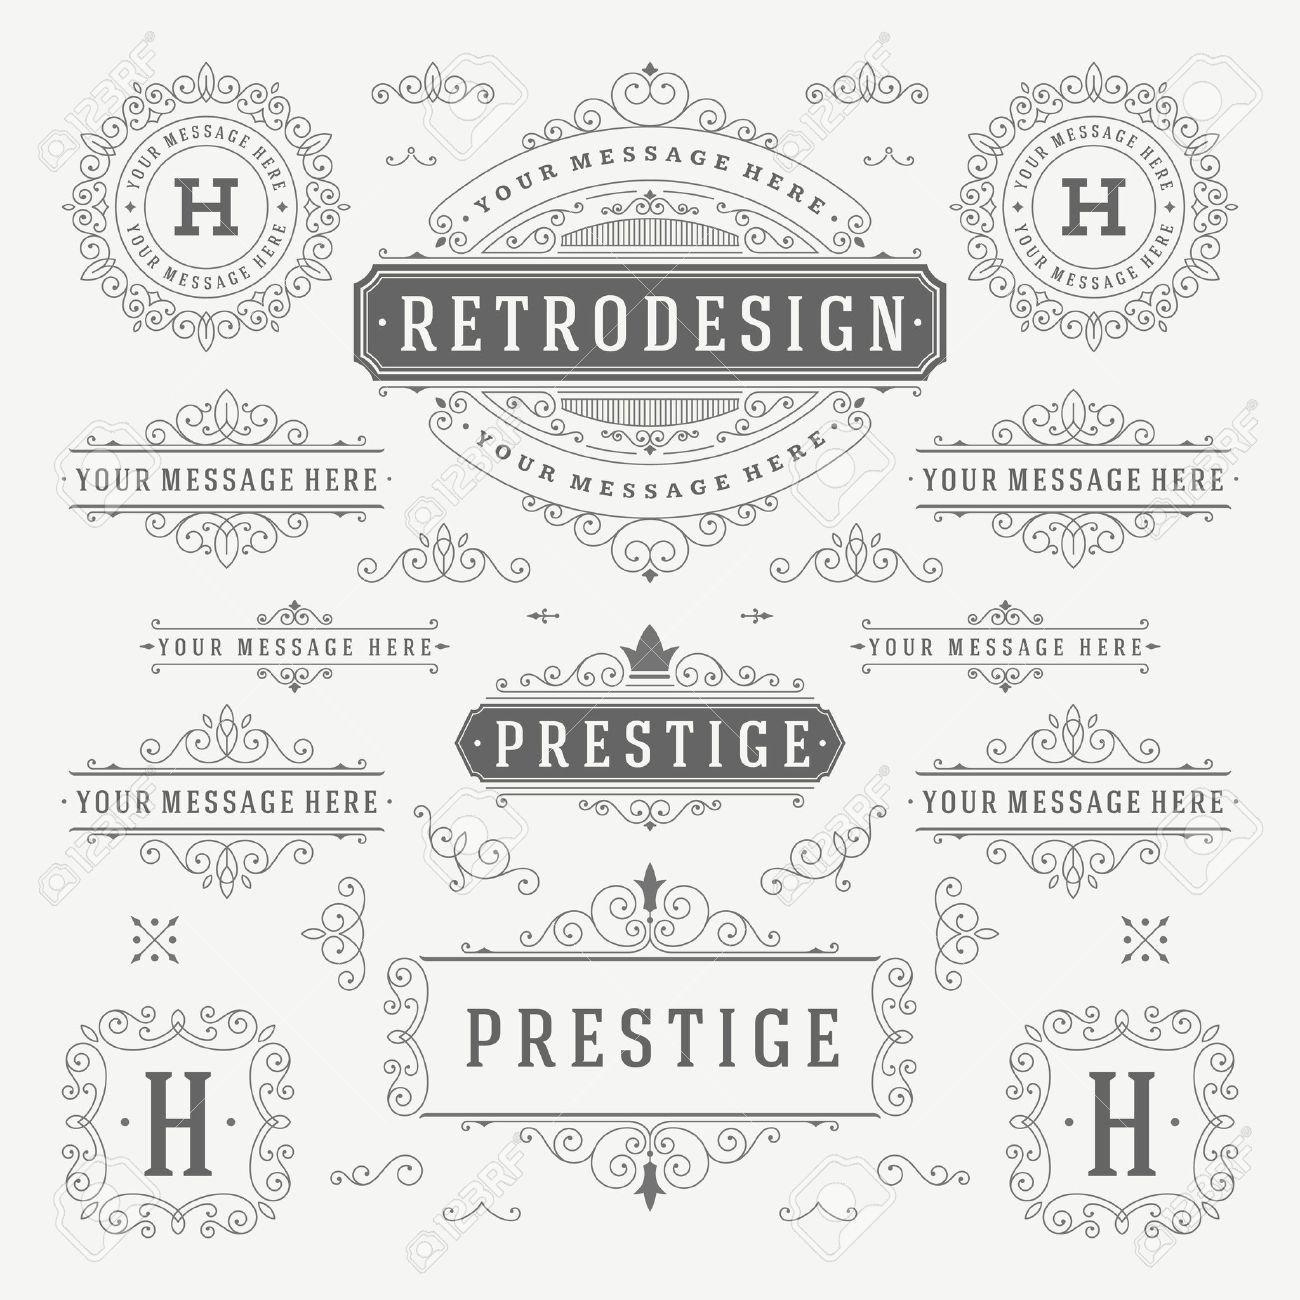 Vintage Vector Ornaments Decorations Design Elements. Flourishes calligraphic combinations retro for Invitations, Restaurant Menu, Royalty, Typography, Quotes, Greeting cards, Certificate and other. - 46917726